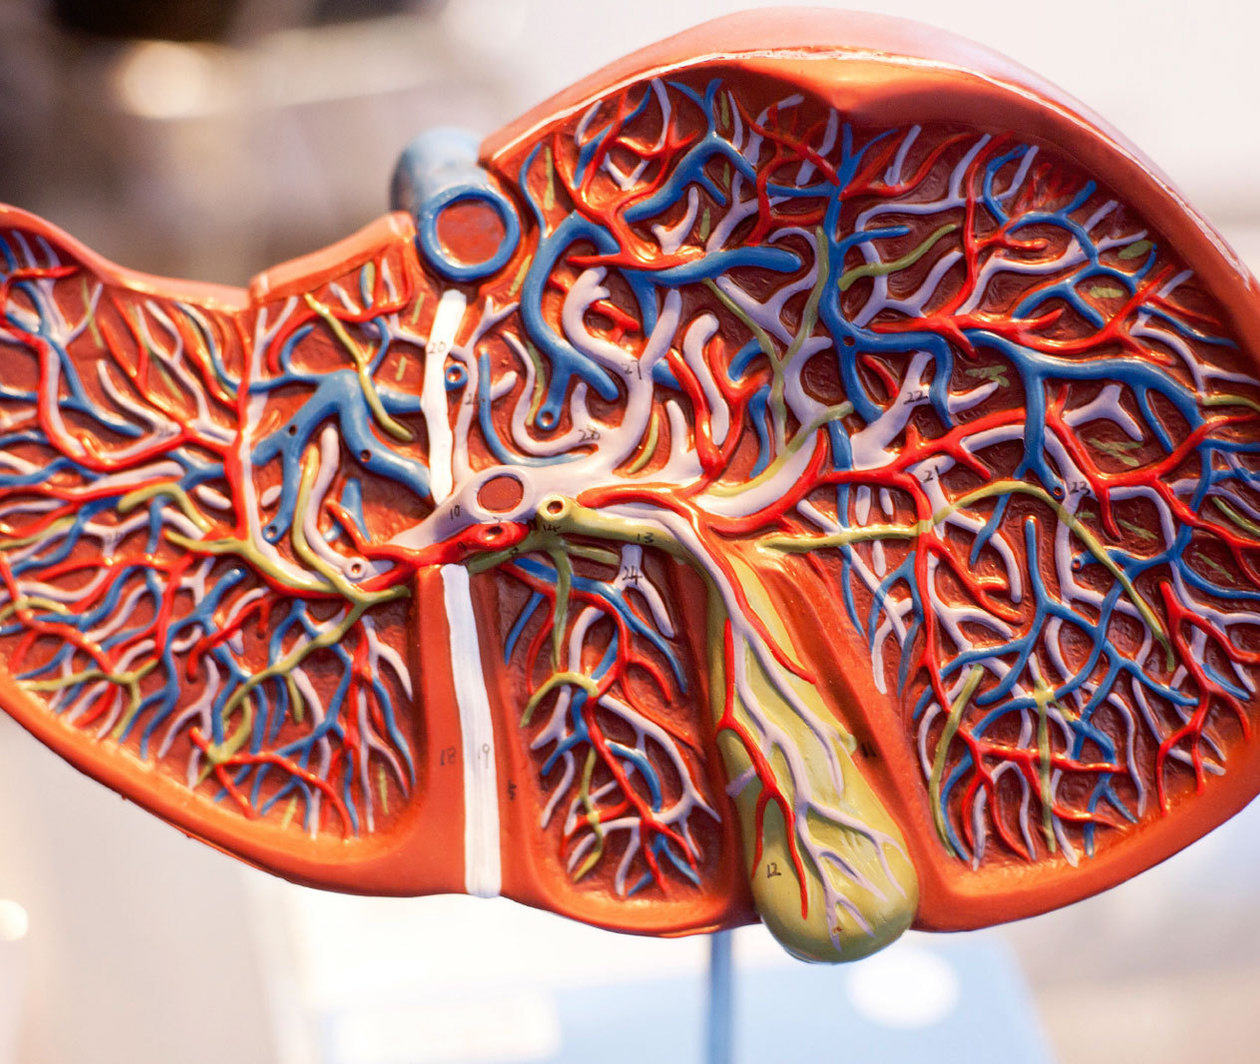 Liver Disease: Looking after Your Liver